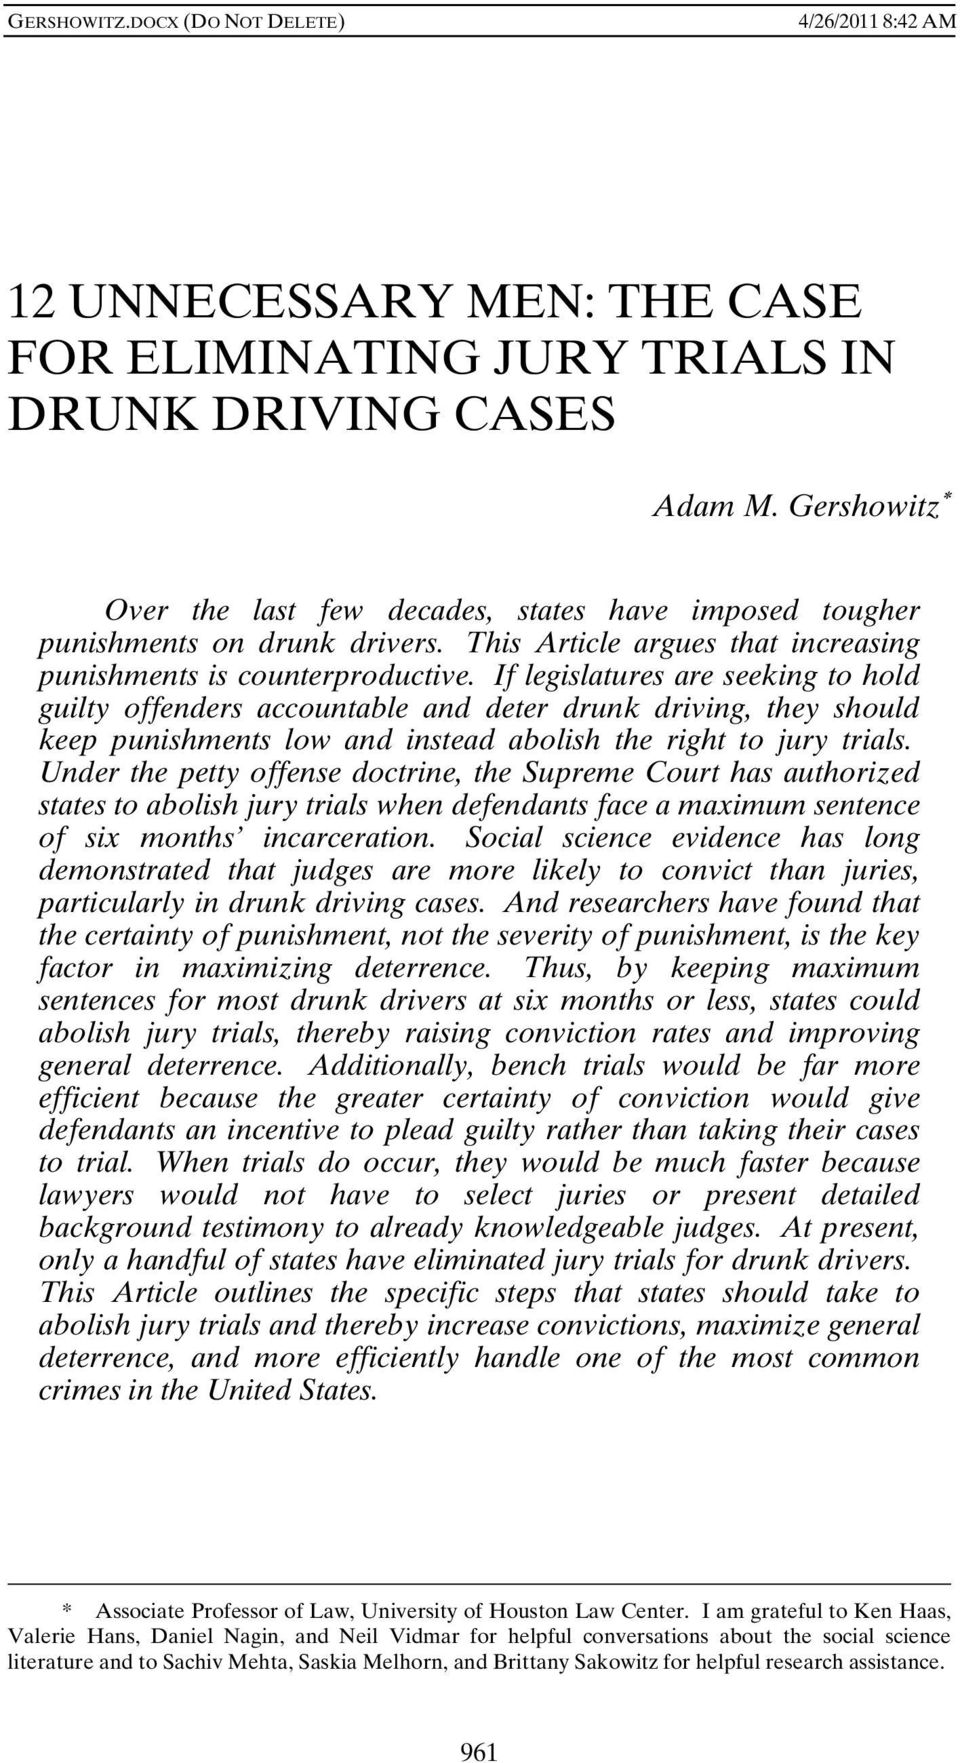 If legislatures are seeking to hold guilty offenders accountable and deter drunk driving, they should keep punishments low and instead abolish the right to jury trials.